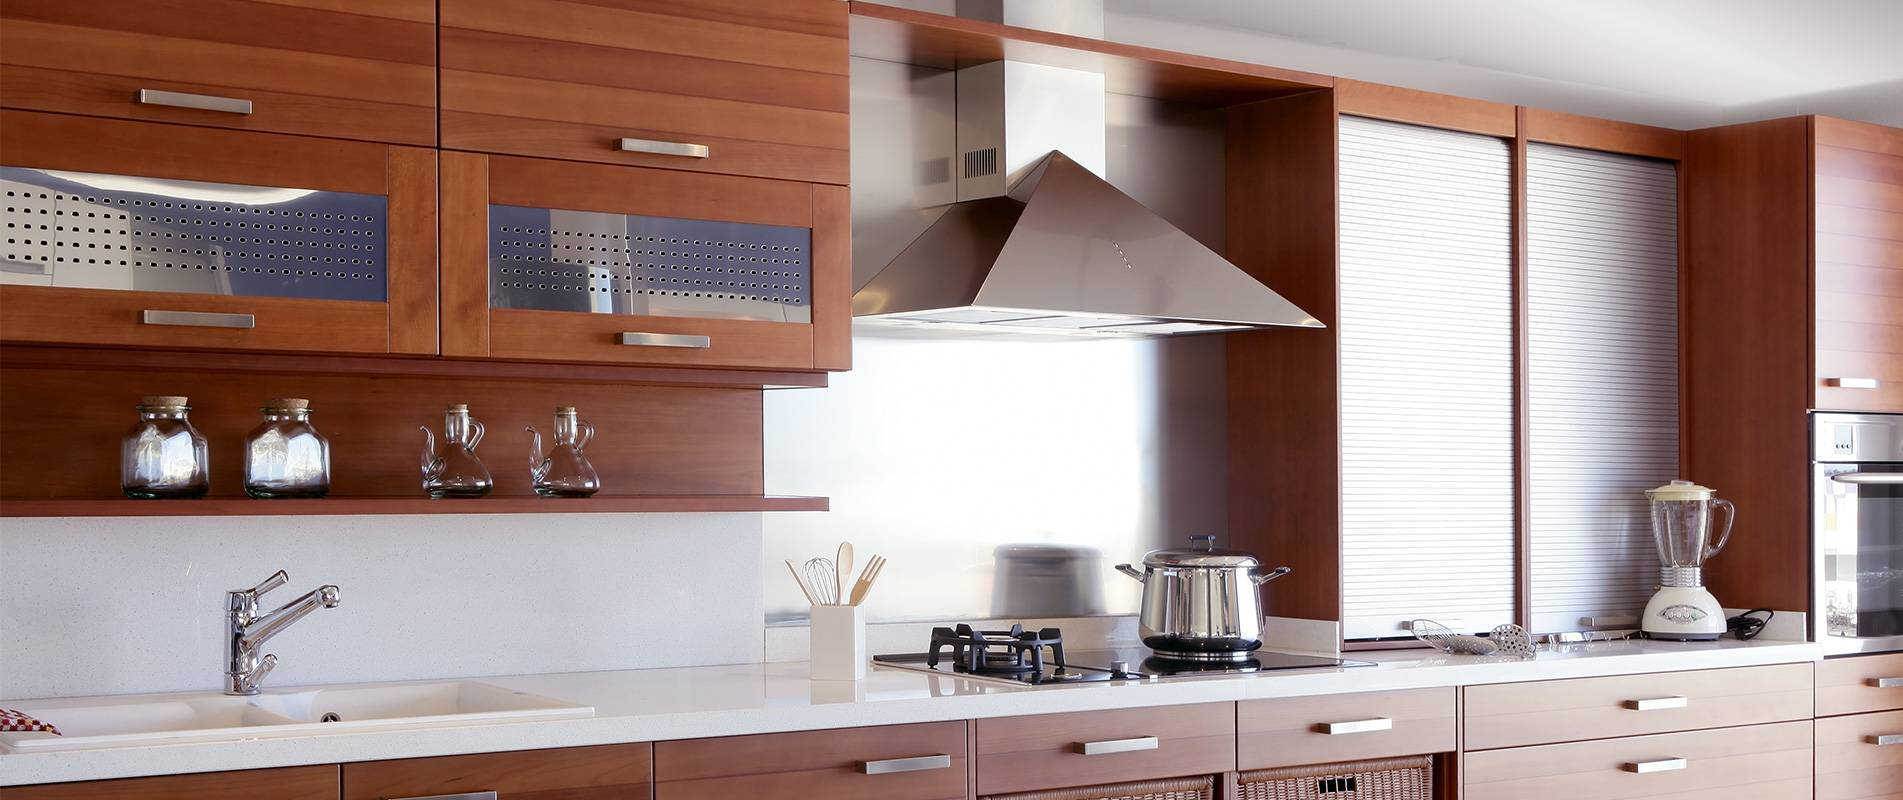 modern well lit kitchen with smooth wooden finish